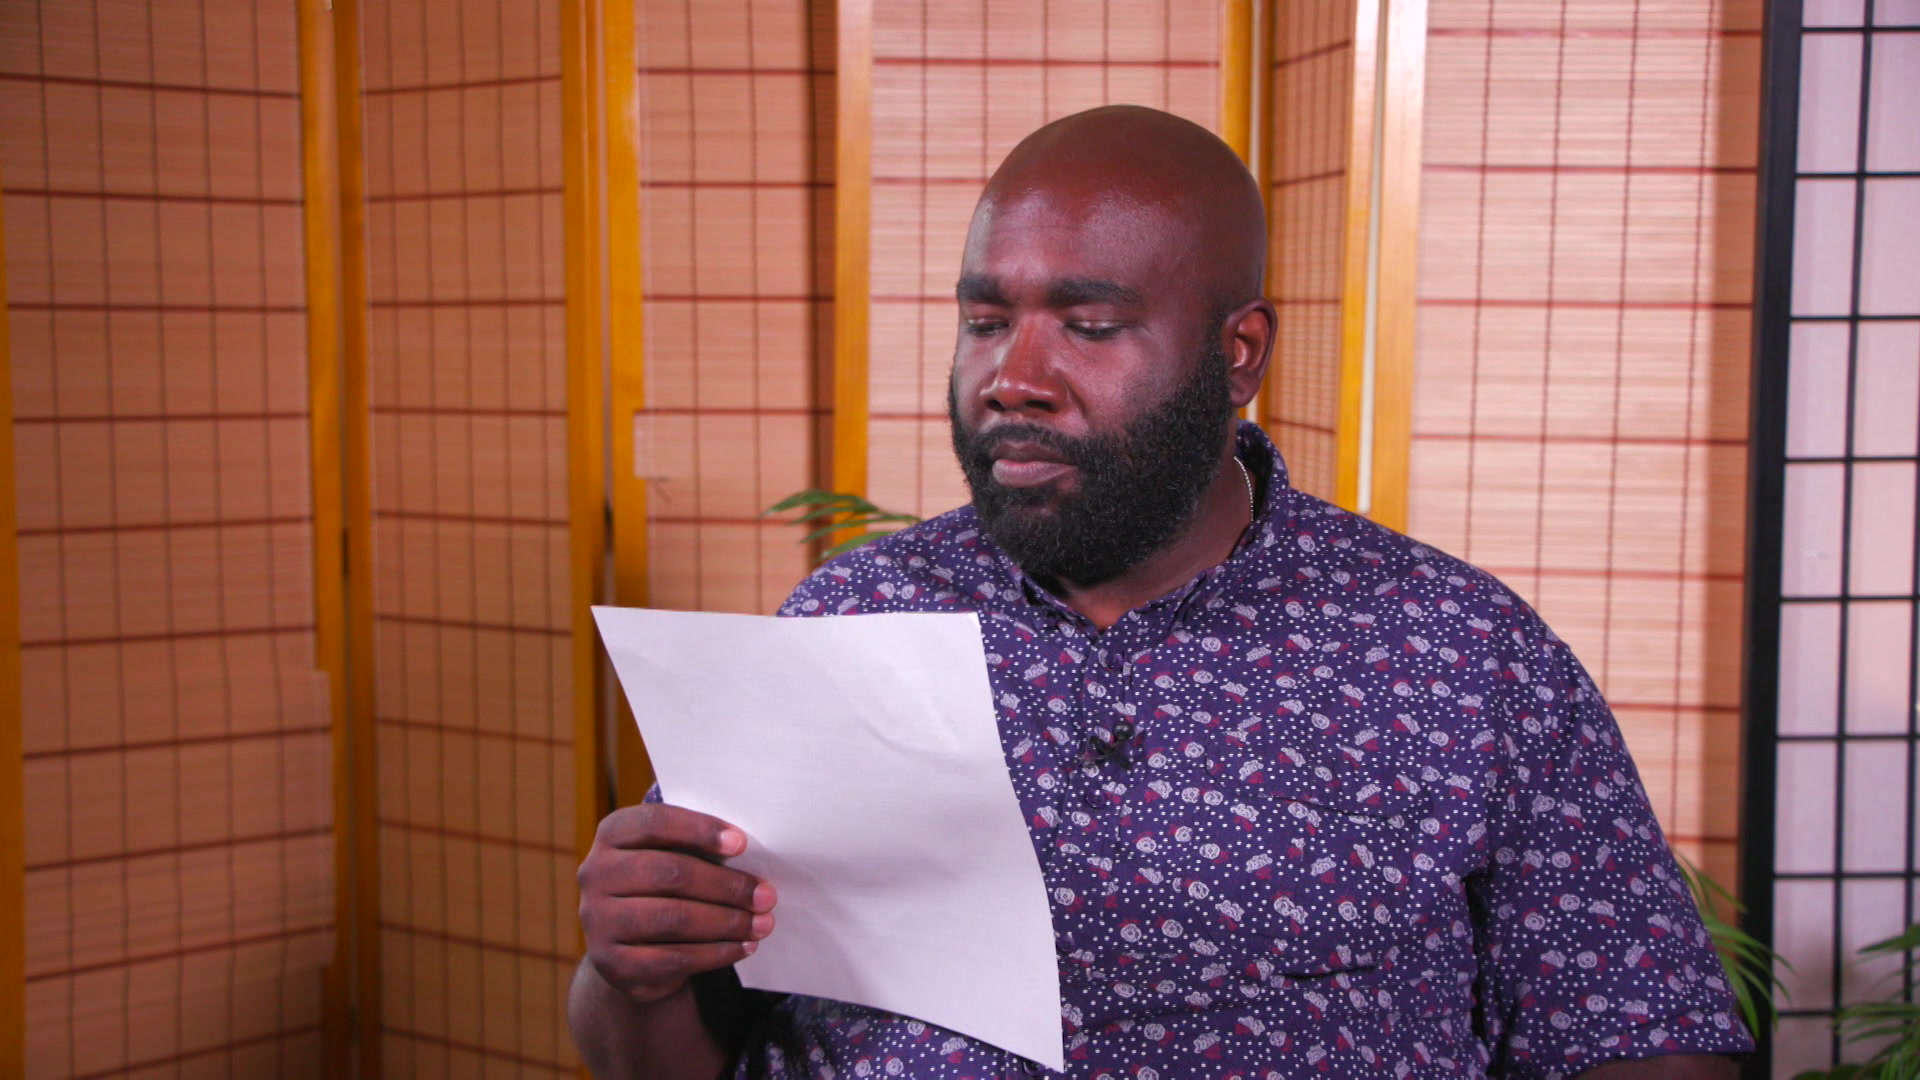 Anthony Cooper holds up and reads from a letter while seated in front of room dividers.